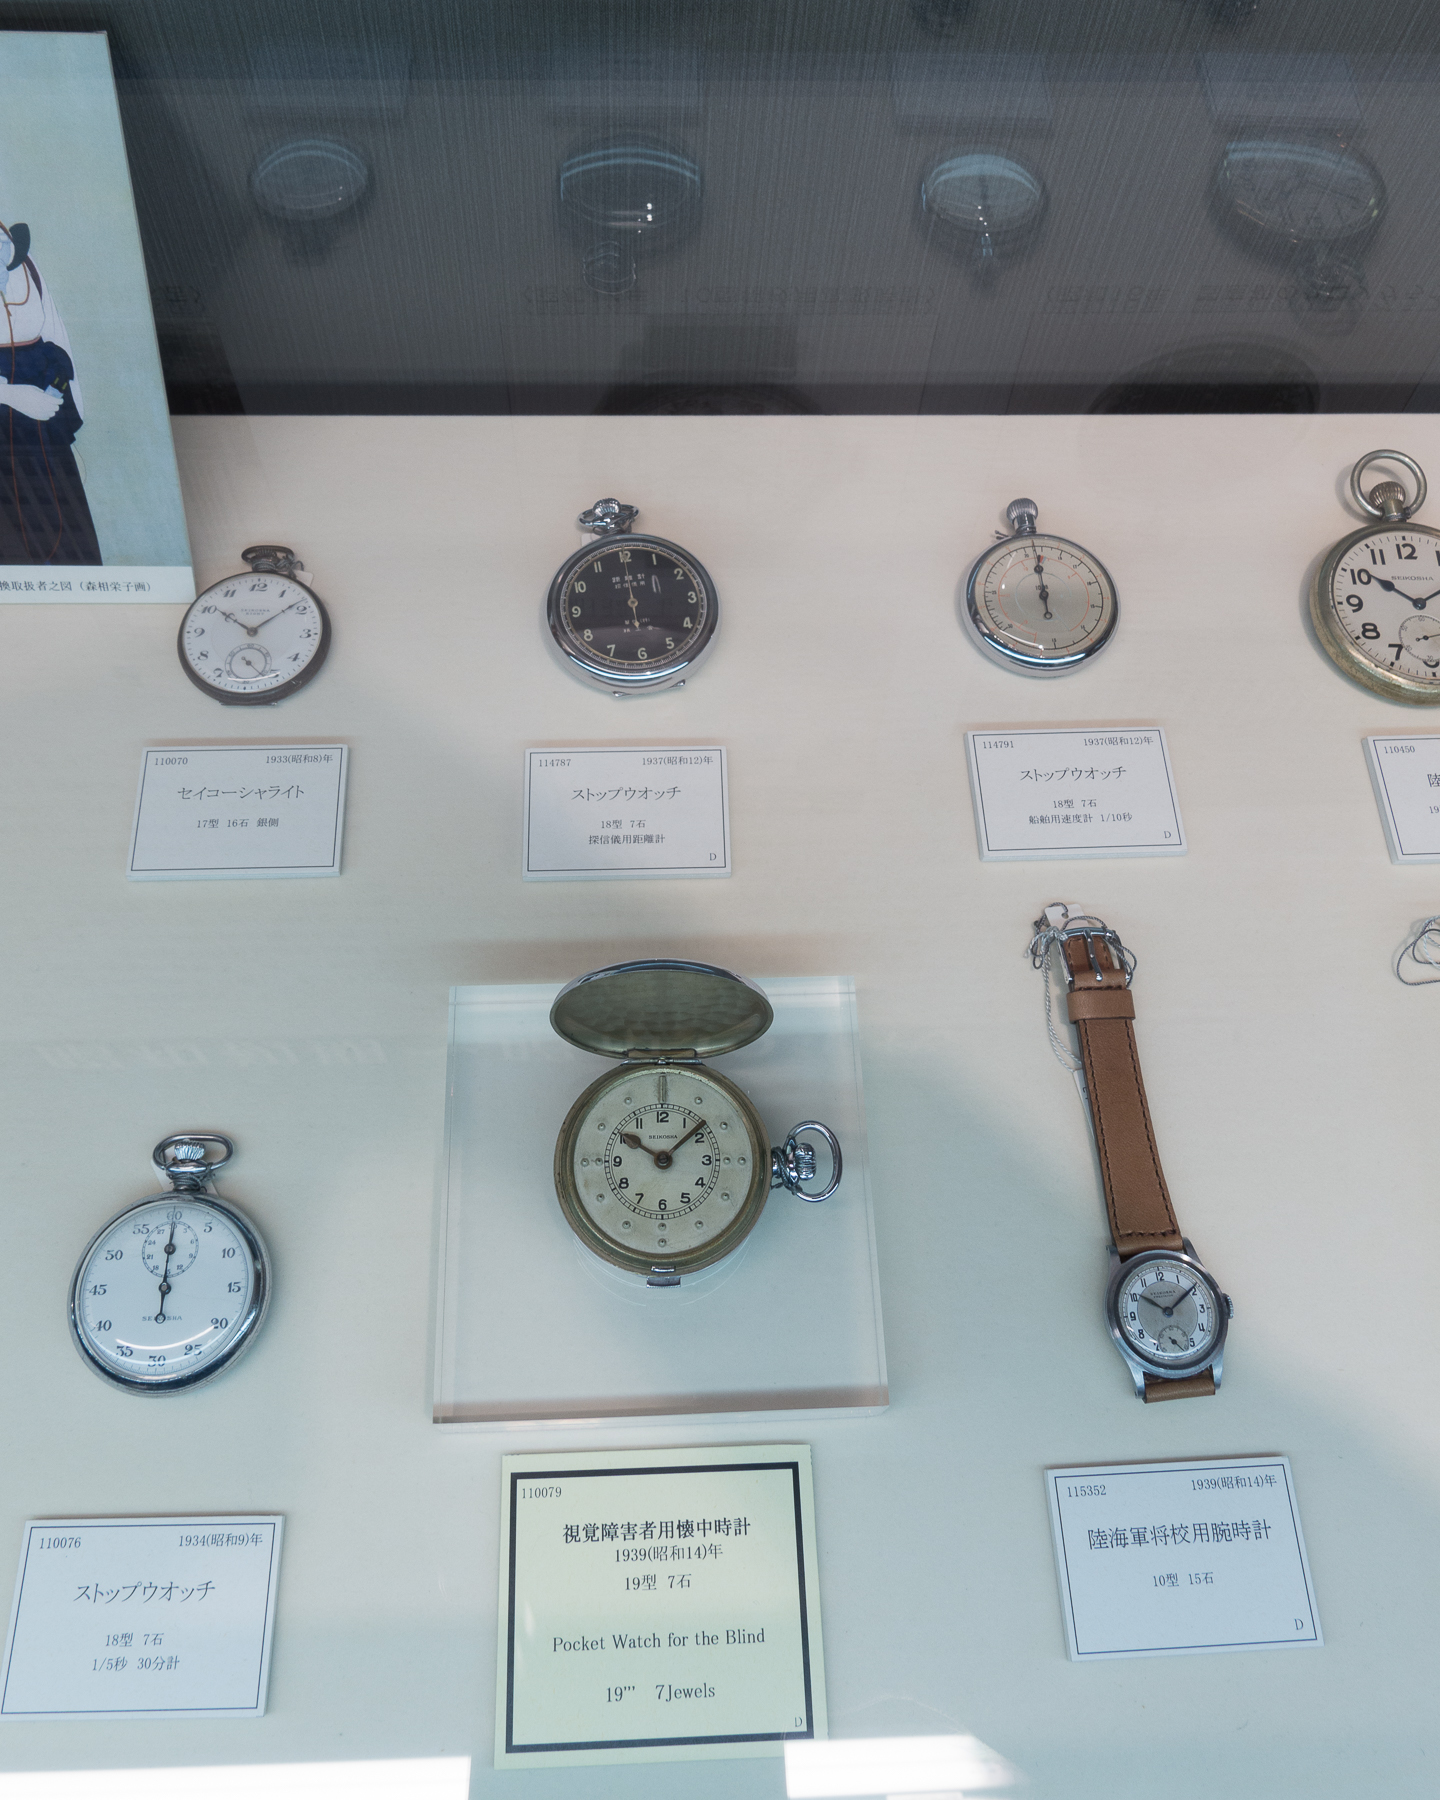 Pocket Watch for the Blind